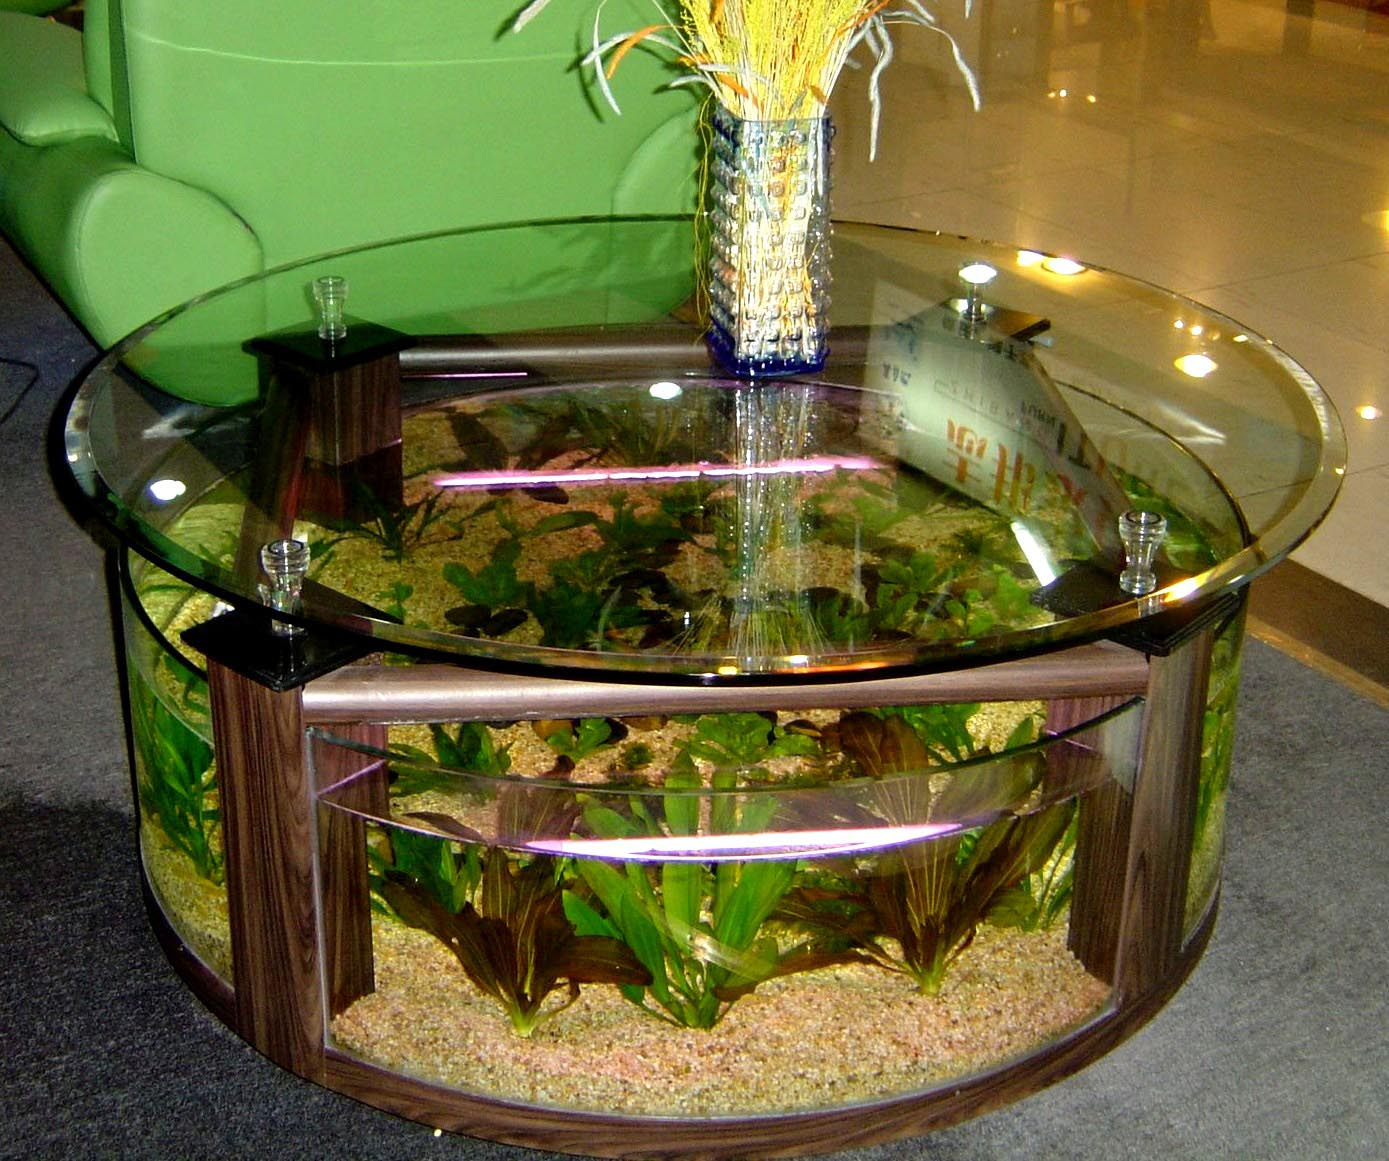 25 Gallon Aqua Coffee Table.Aqua Coffee Table 28 Gallon Aquarium Aquarium Design Ideas